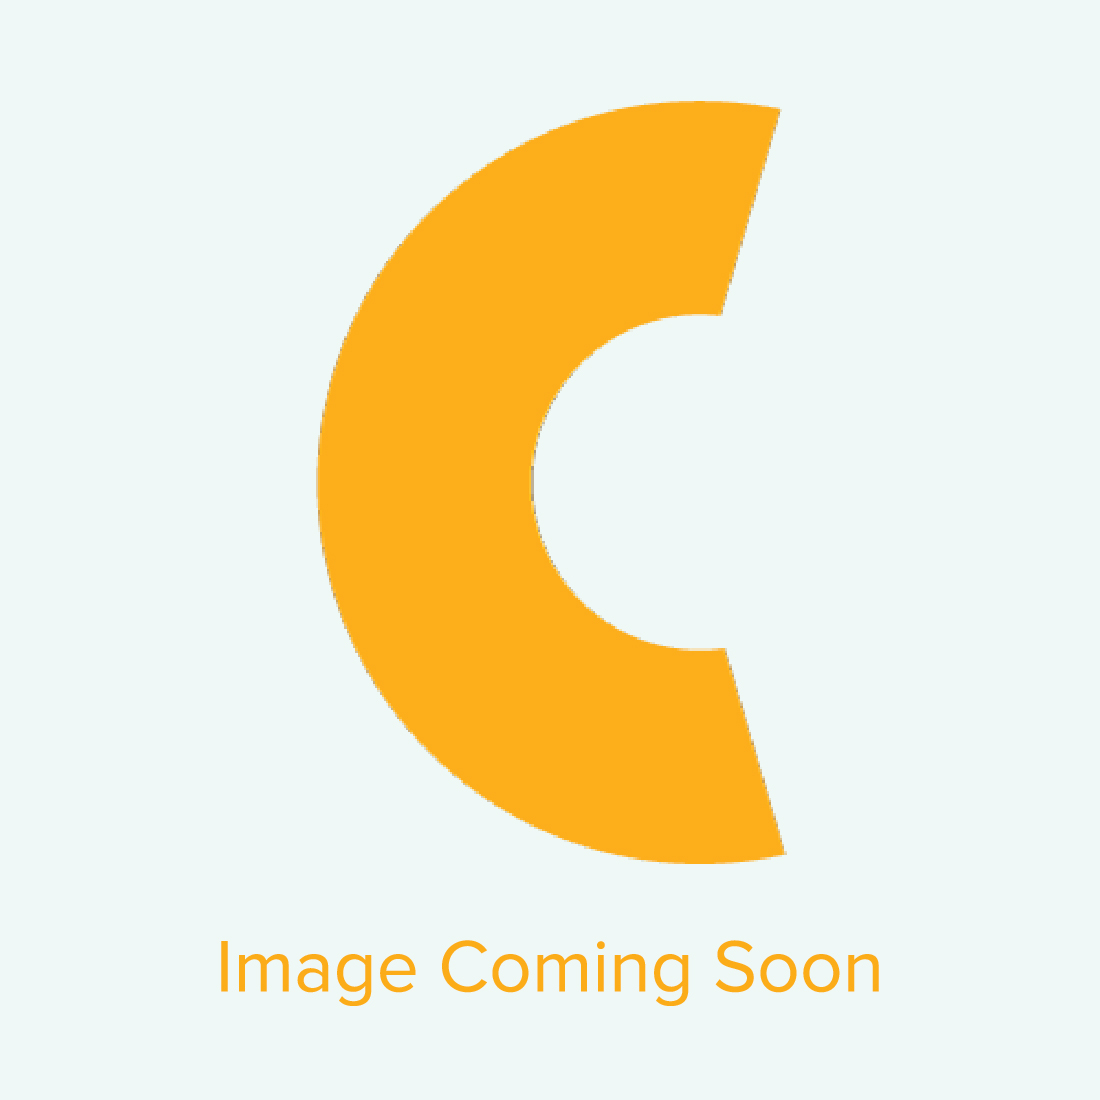 HP 64-inch Latex 560 Printer